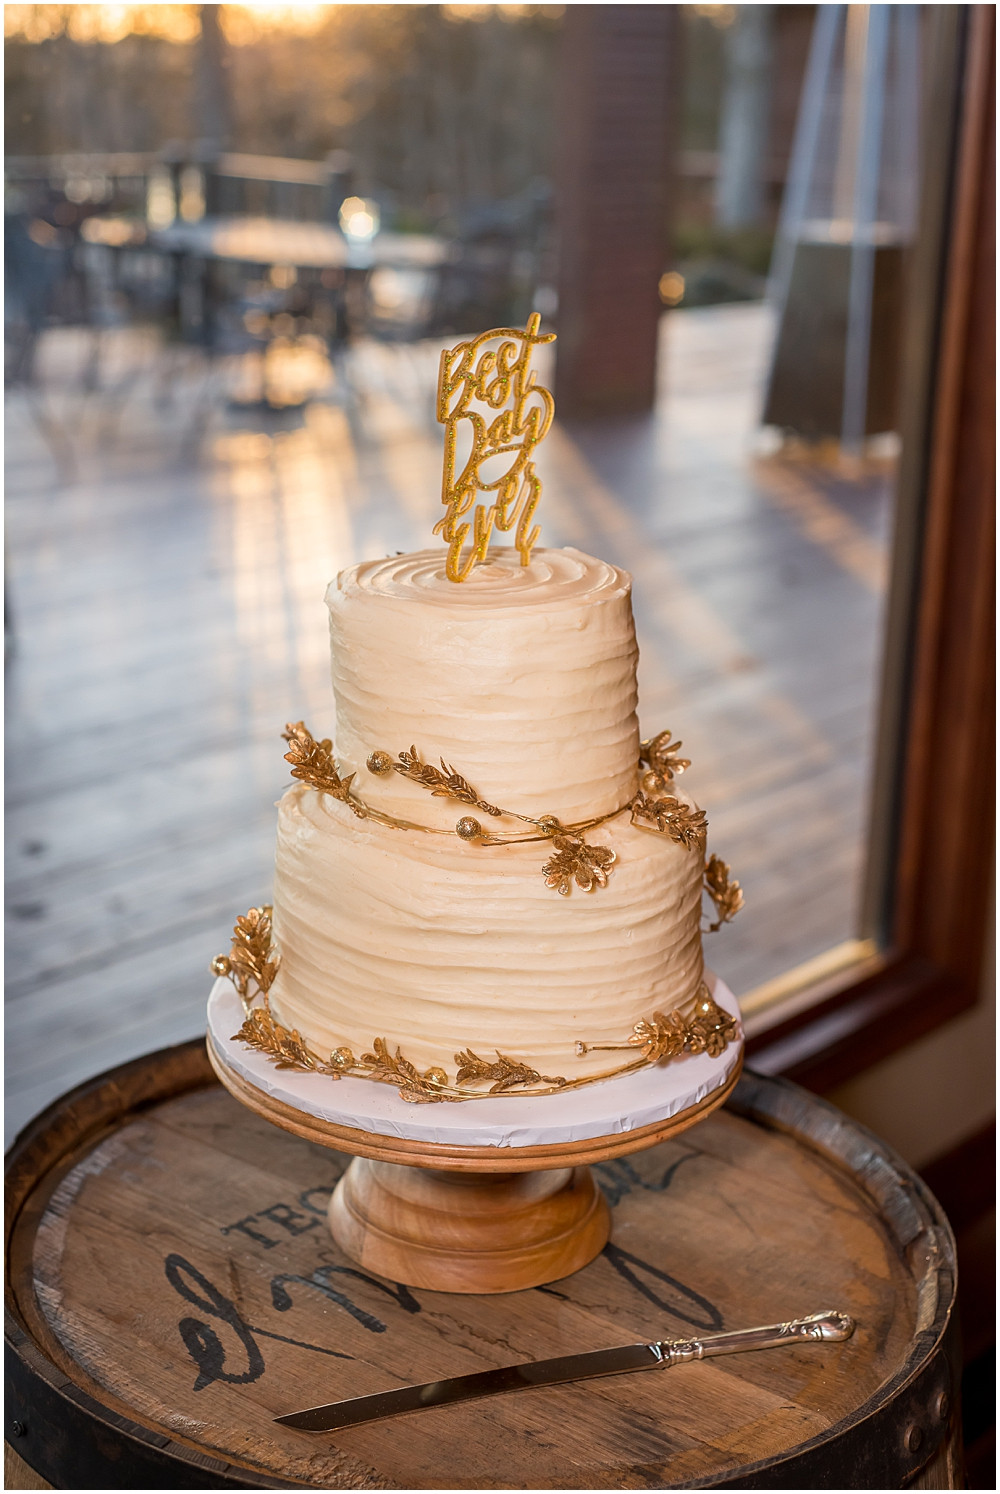 wedding cake, gold adornments, best day ever